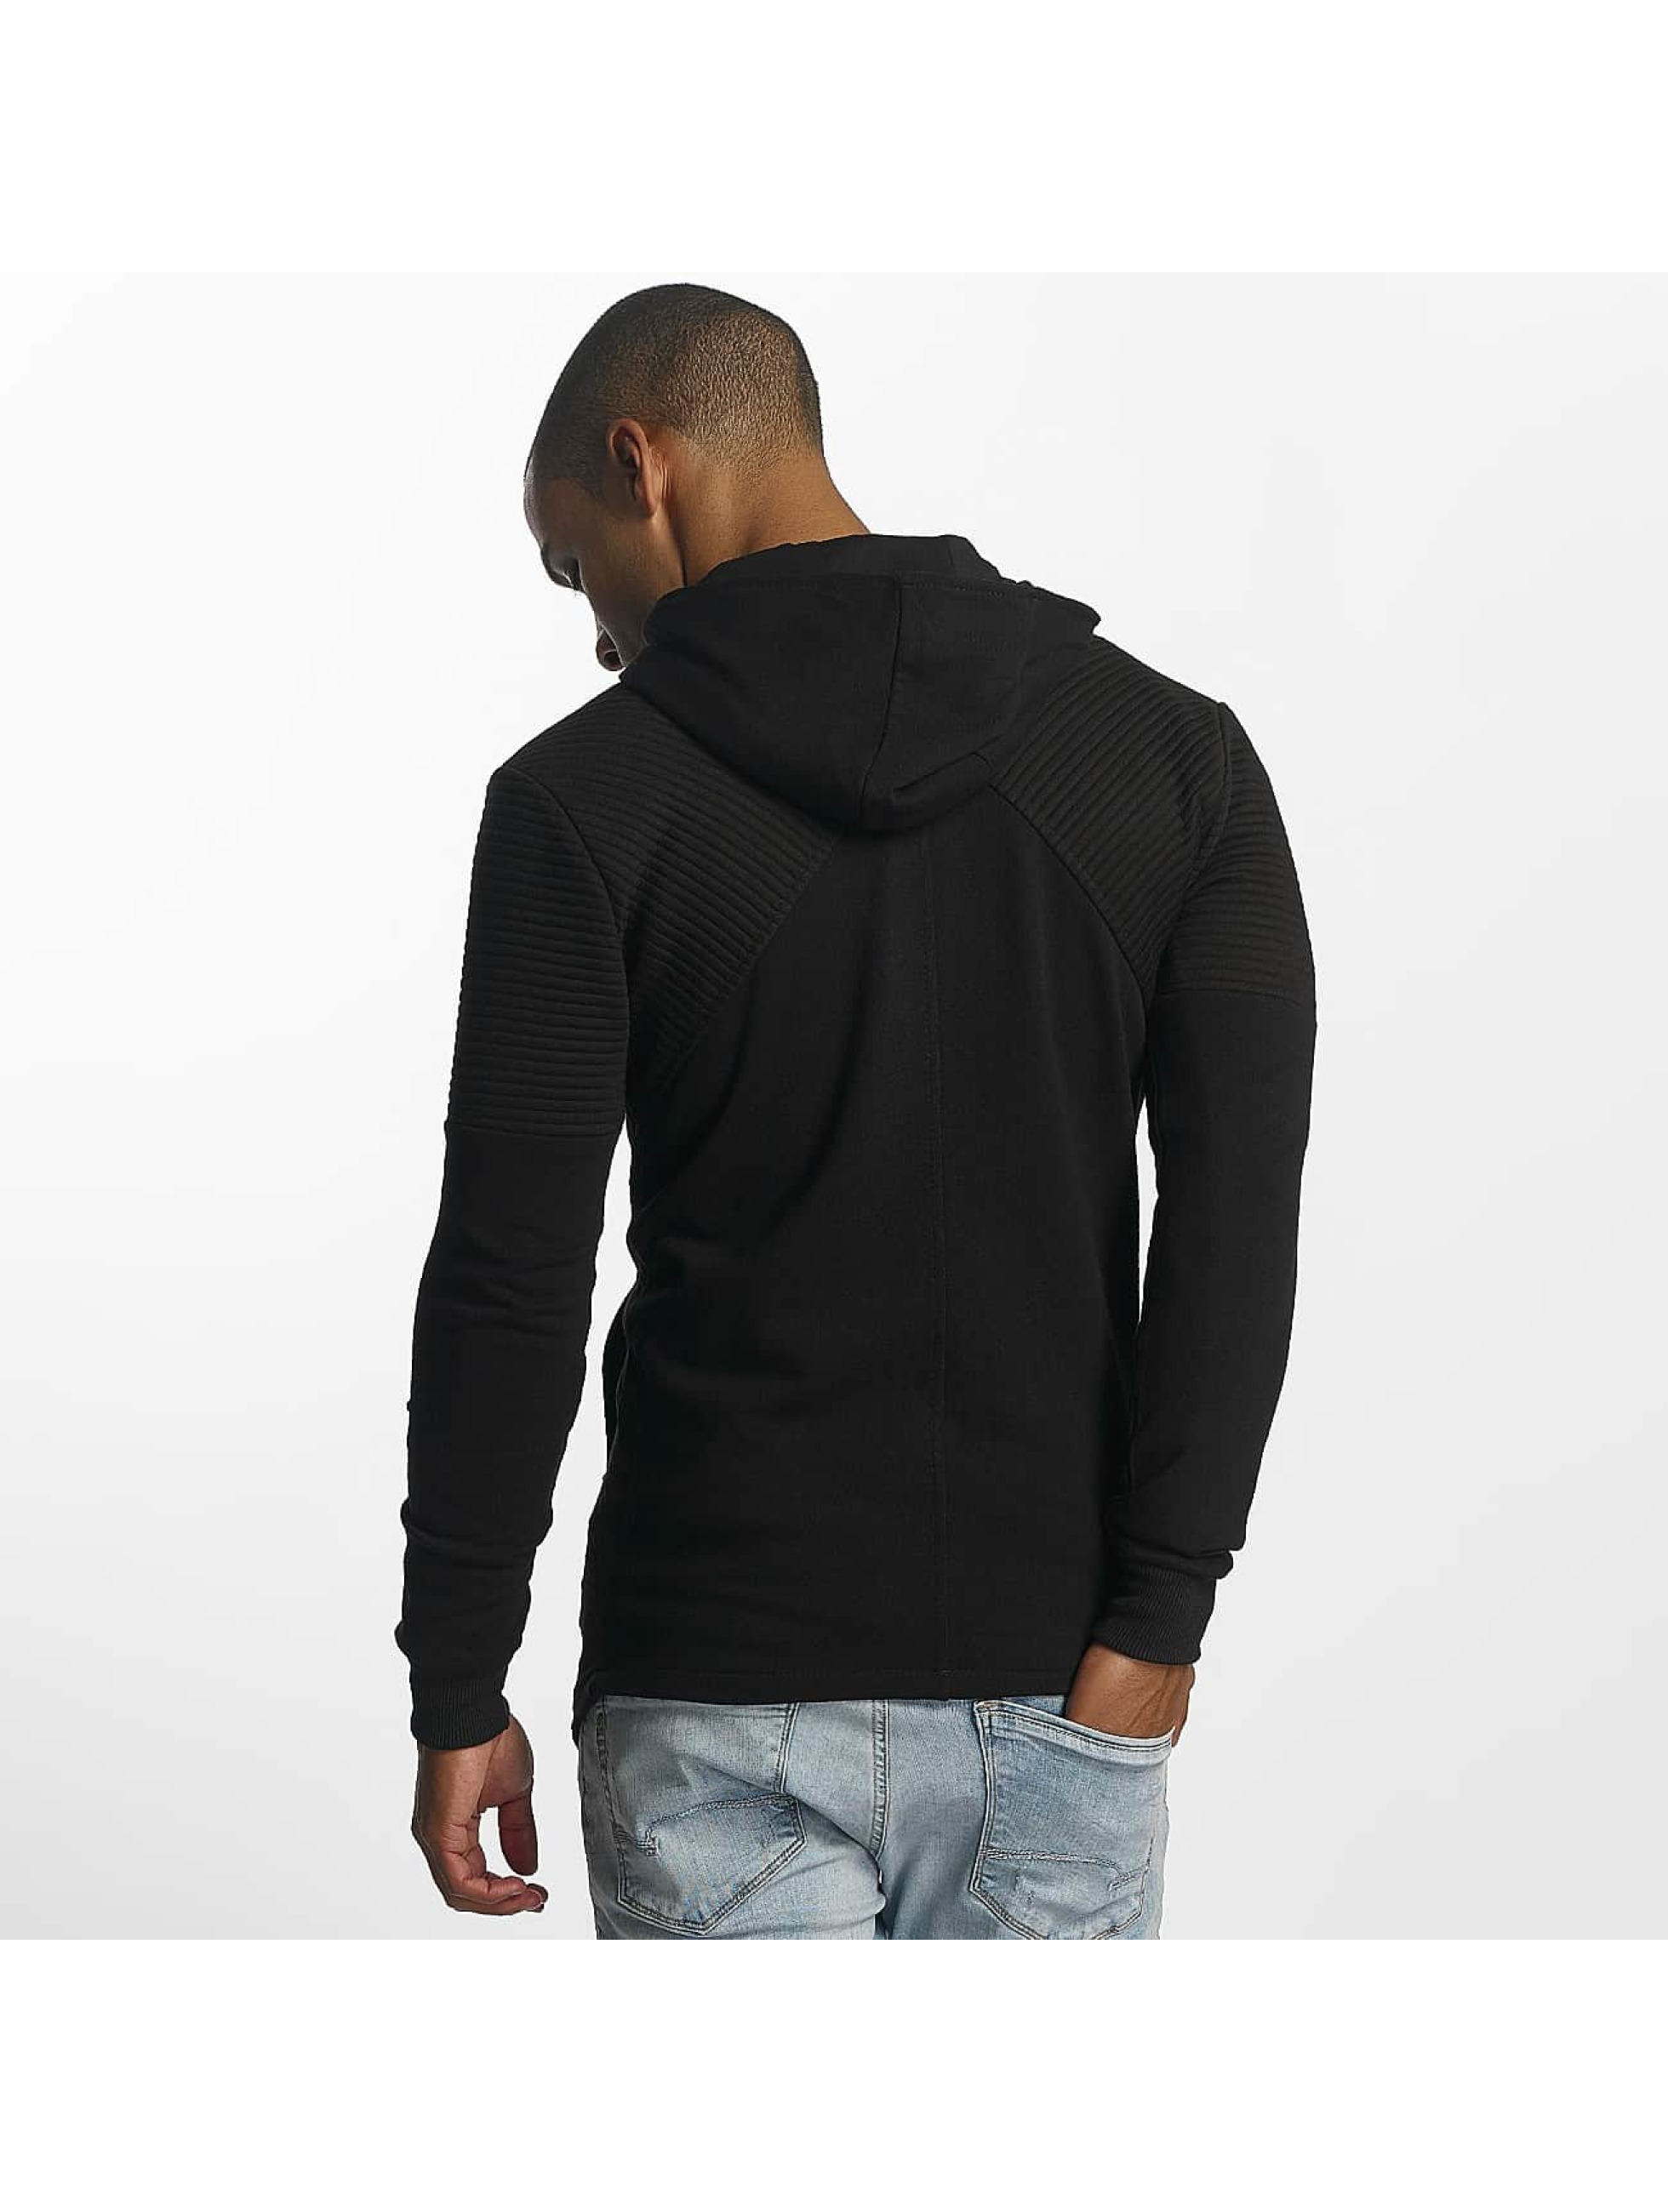 Uniplay Zip Hoodie Zipper black